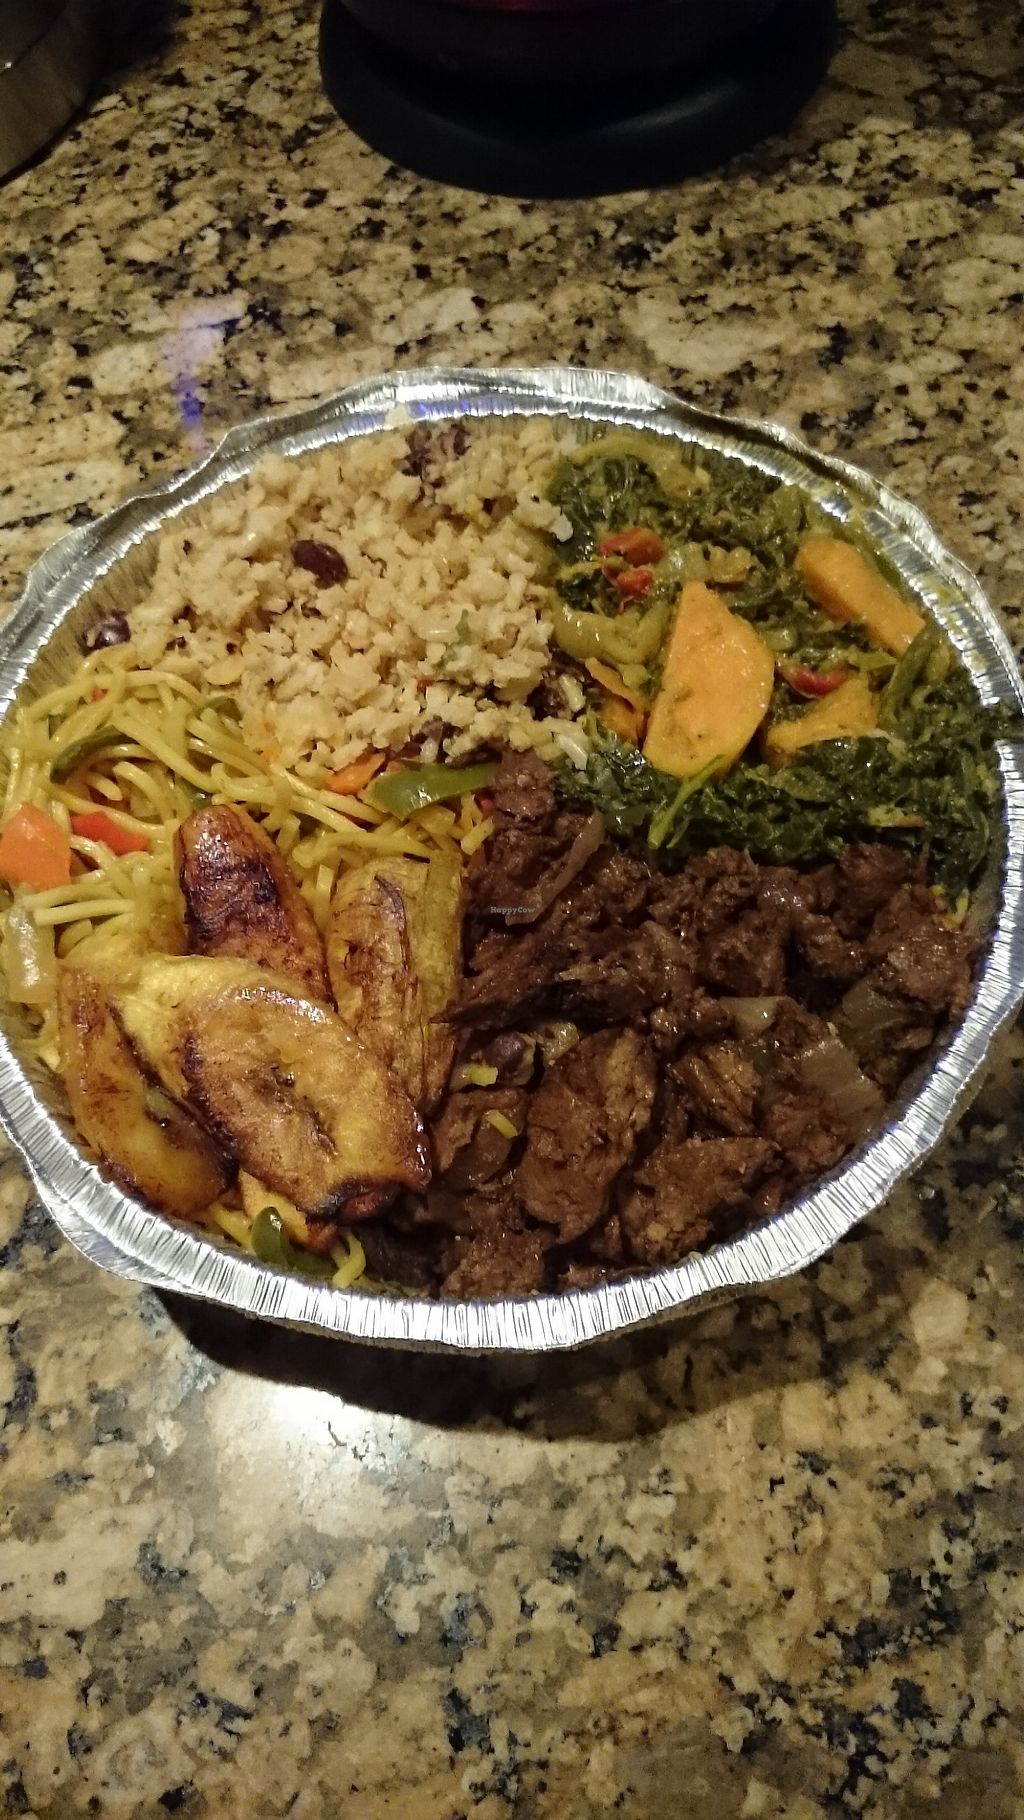 """Photo of Luvinya-215  by <a href=""""/members/profile/ZoraySpielvogel"""">ZoraySpielvogel</a> <br/>This humongous plater was only $10. It had rice,fried plantains, greens,  BBQ seitan, noodles & some mixed veggies.  <br/> January 30, 2018  - <a href='/contact/abuse/image/107242/352903'>Report</a>"""